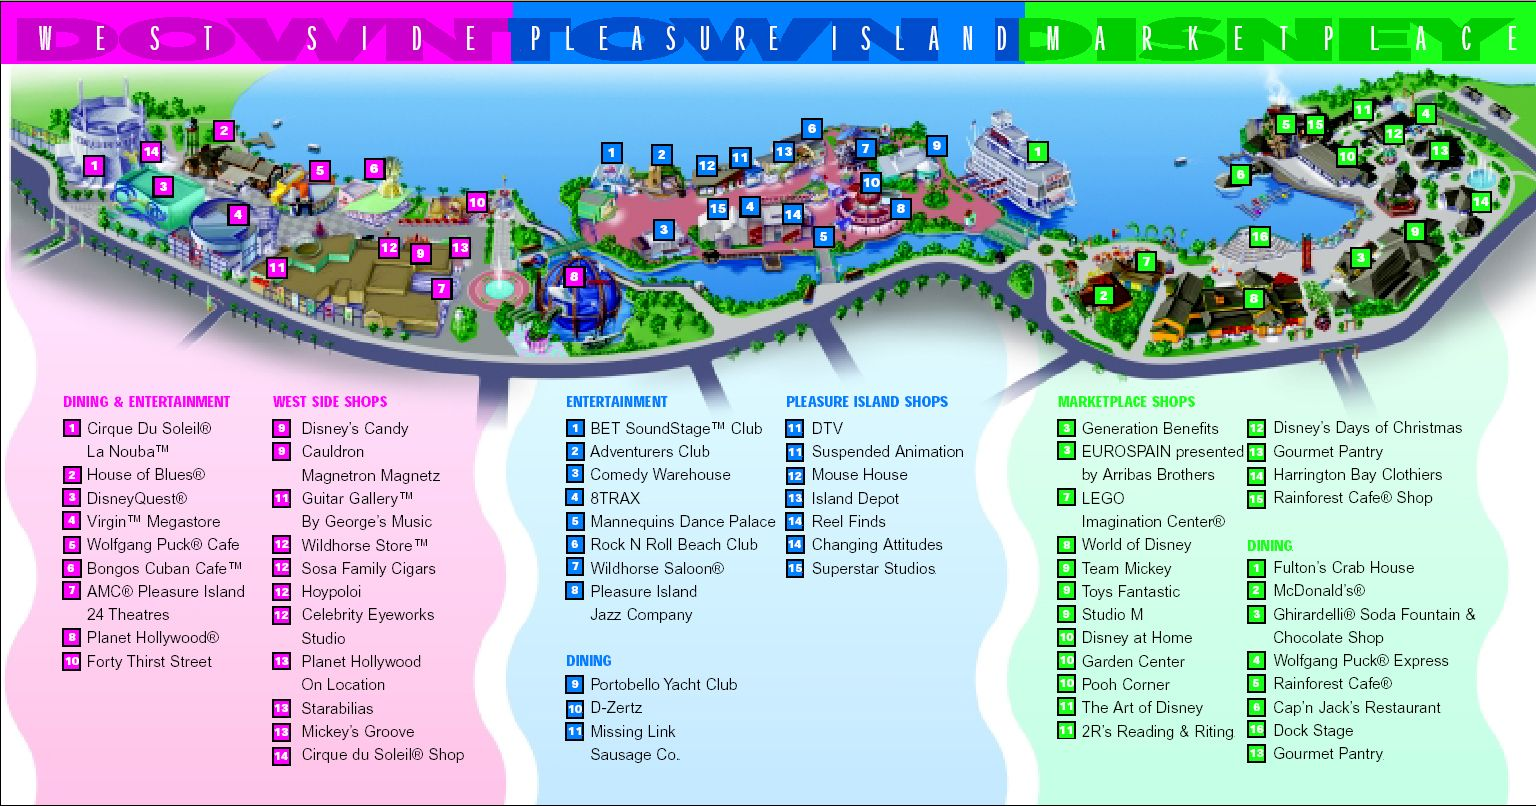 map of downtown disney orlando fl Disney World Maps Disney Maps Map Of Disney World Epcot Maps map of downtown disney orlando fl